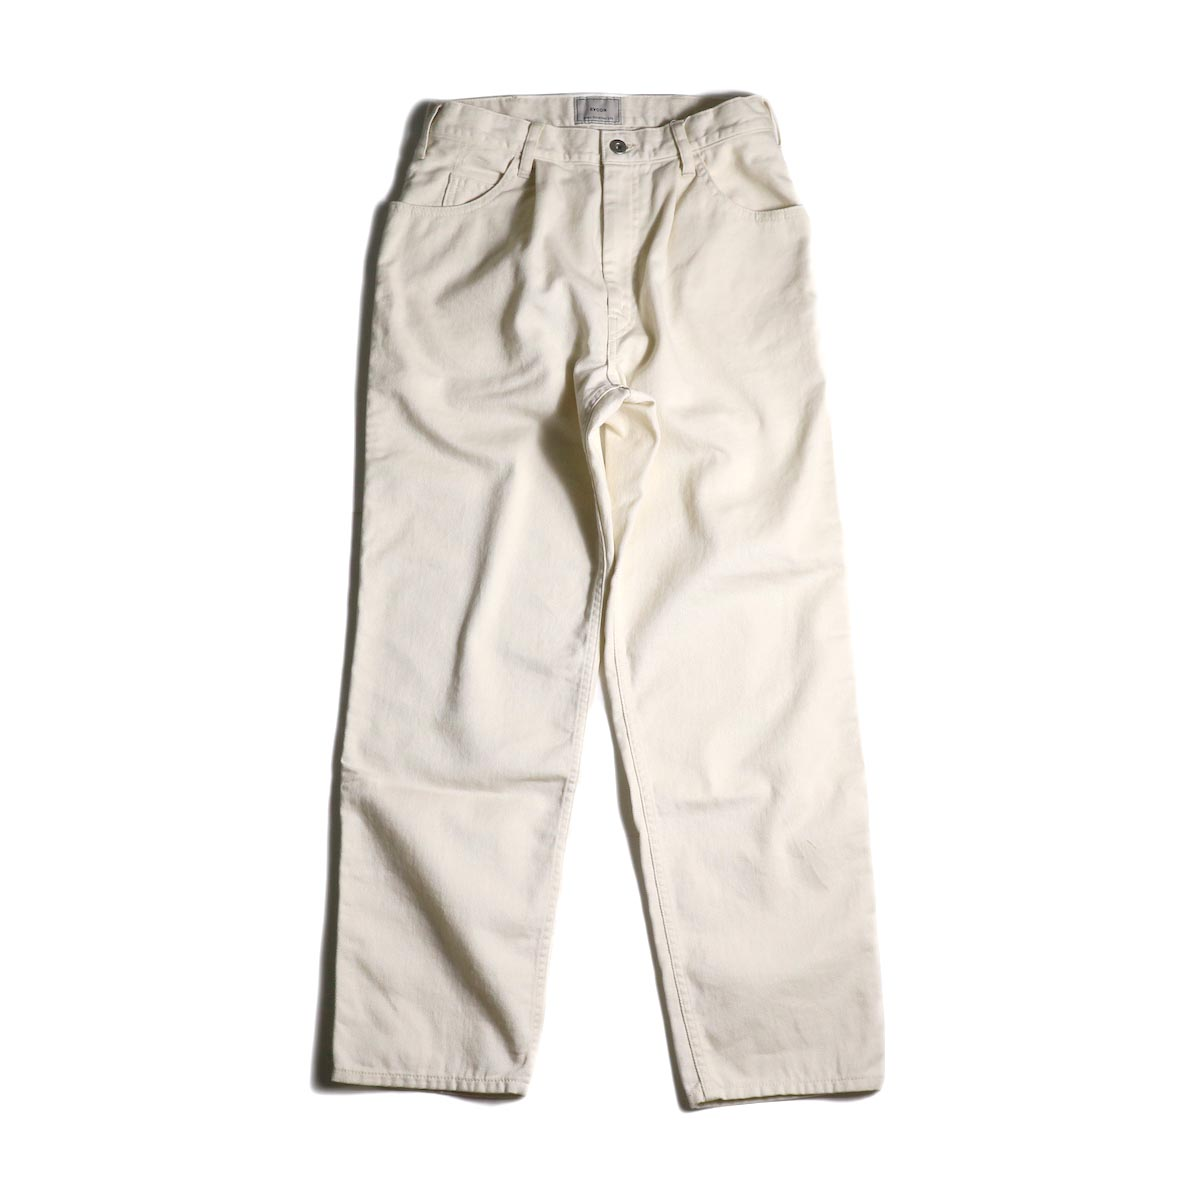 EVCON / 5 POCKET TUCK WIDE PANTS (Ivory)